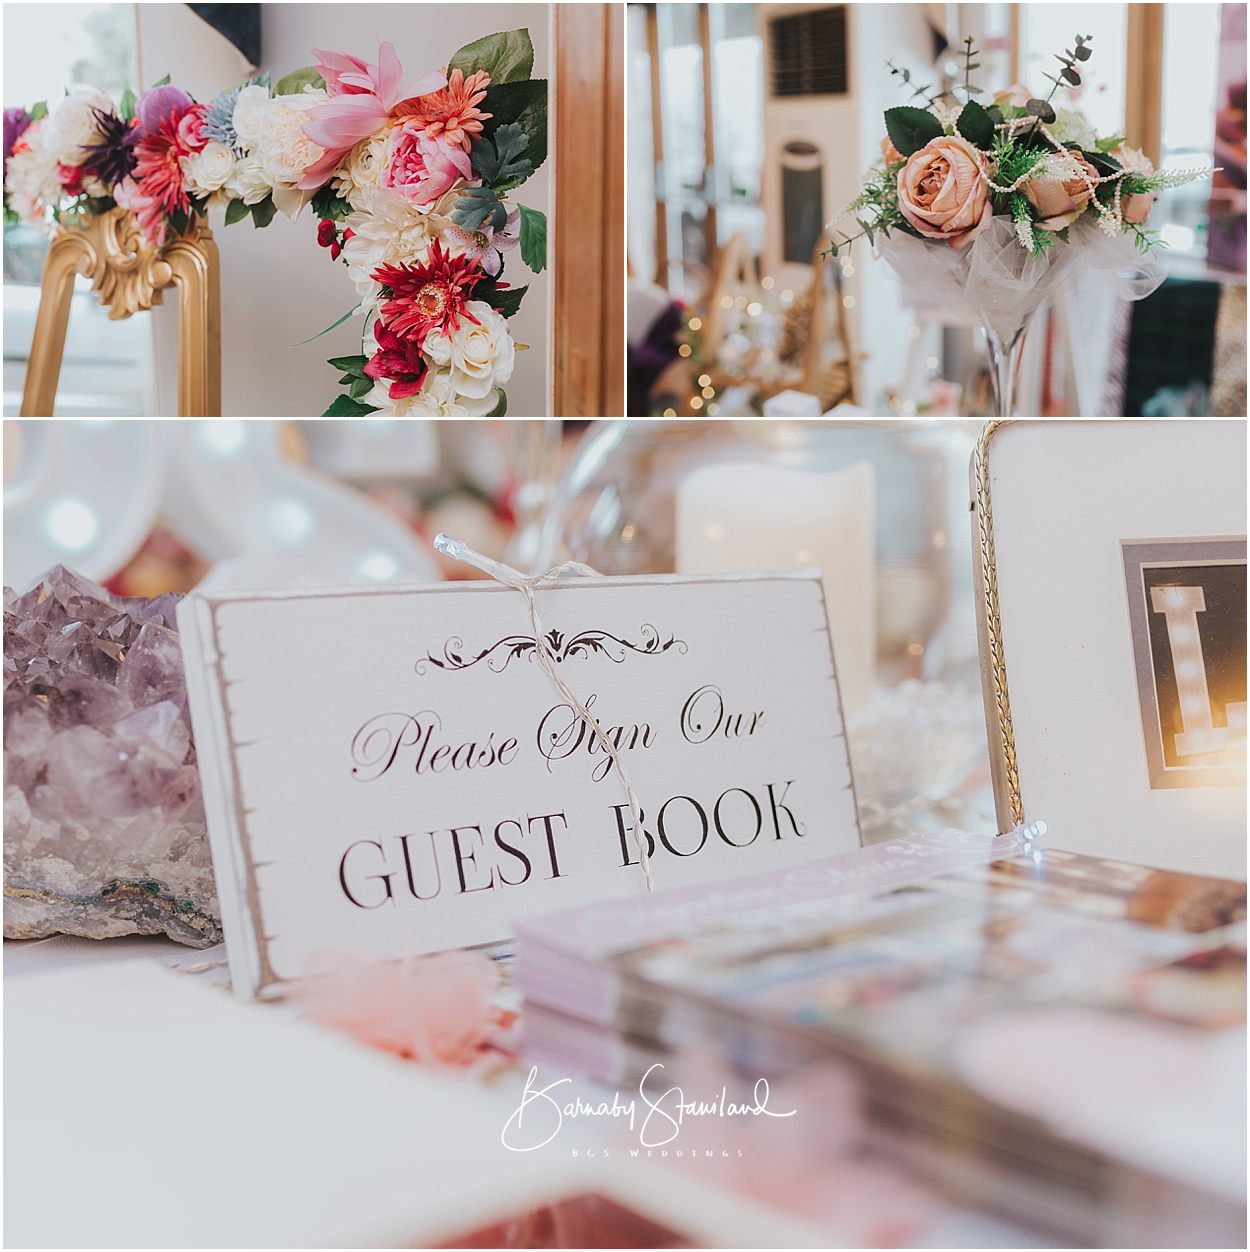 Rutland Wedding Photography wedding sign saying 'please sign our guestbook'